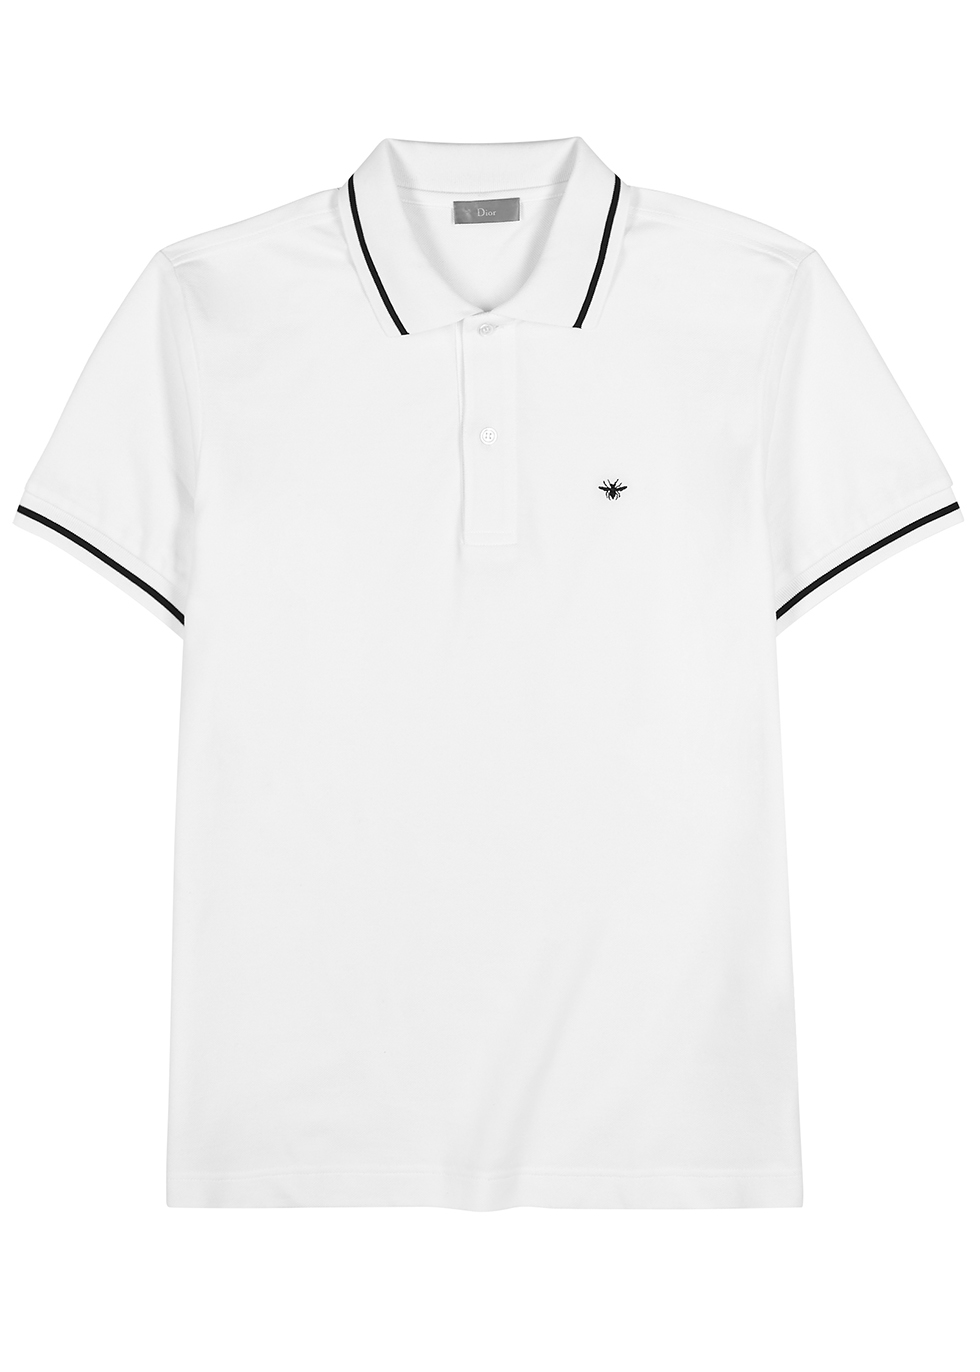 8cc9319d Men's Designer Polo Shirts - Harvey Nichols